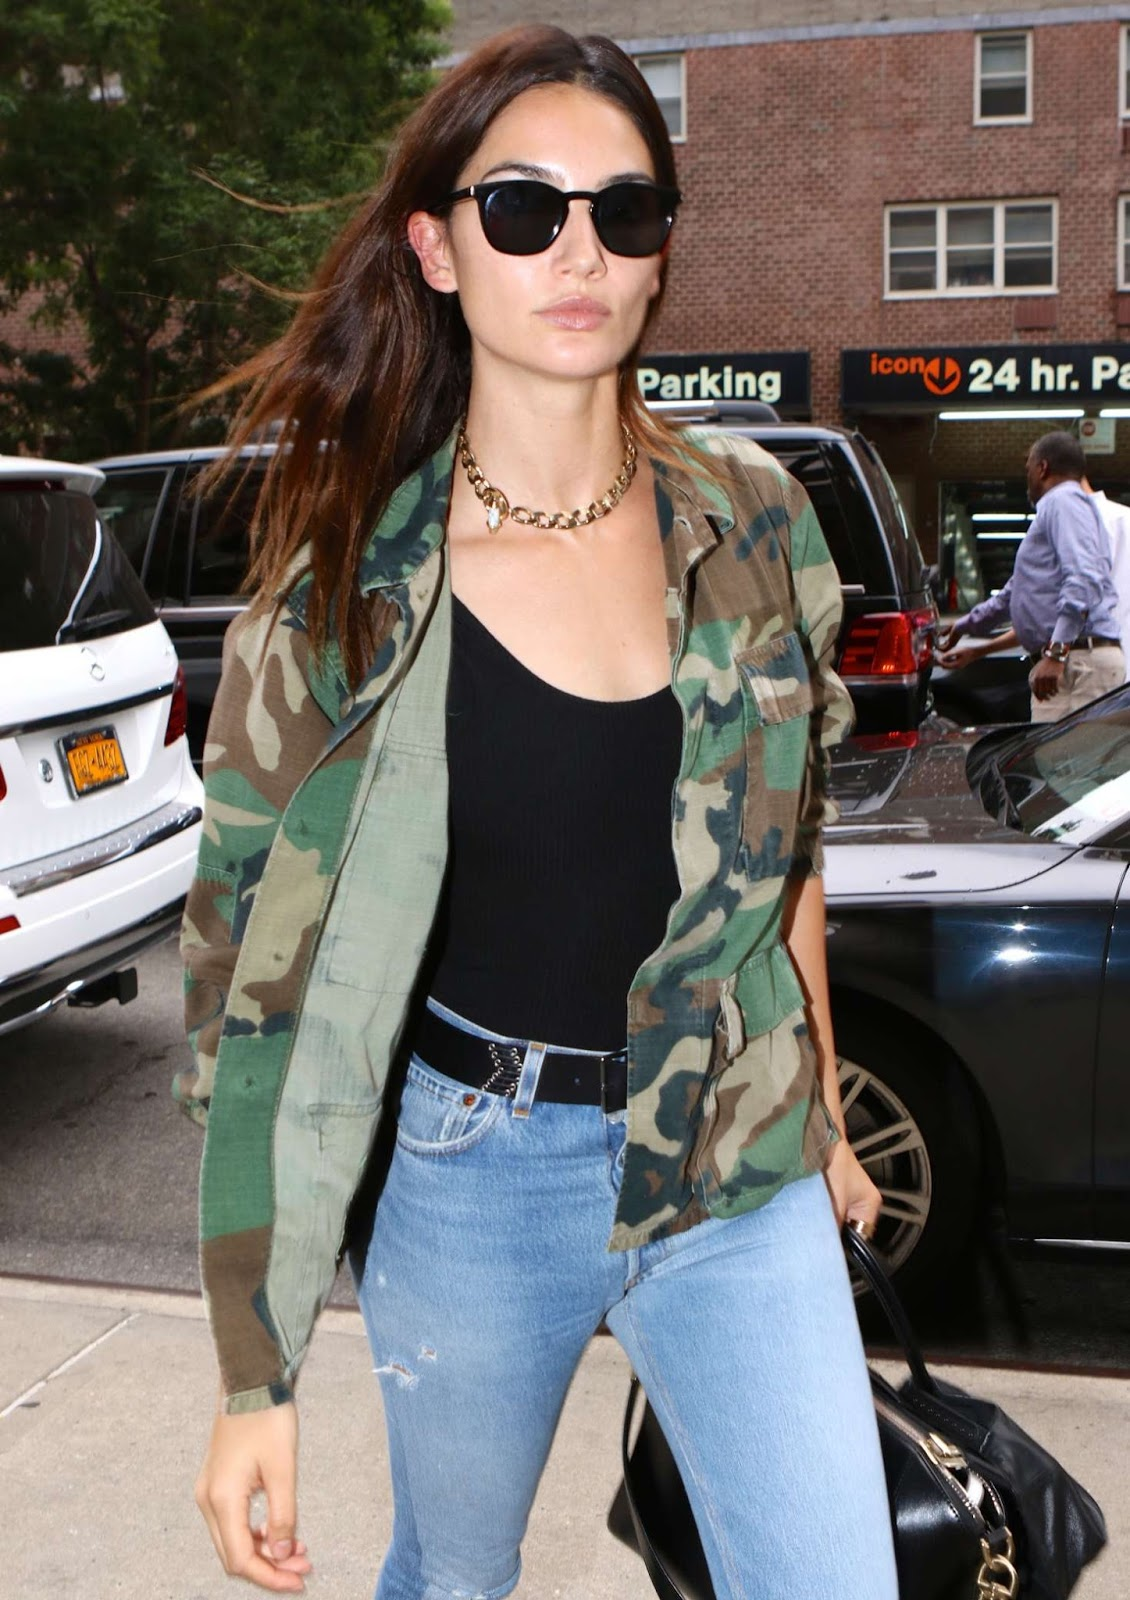 Lily Aldridge Wears Camouflage & Denim Out in NYC